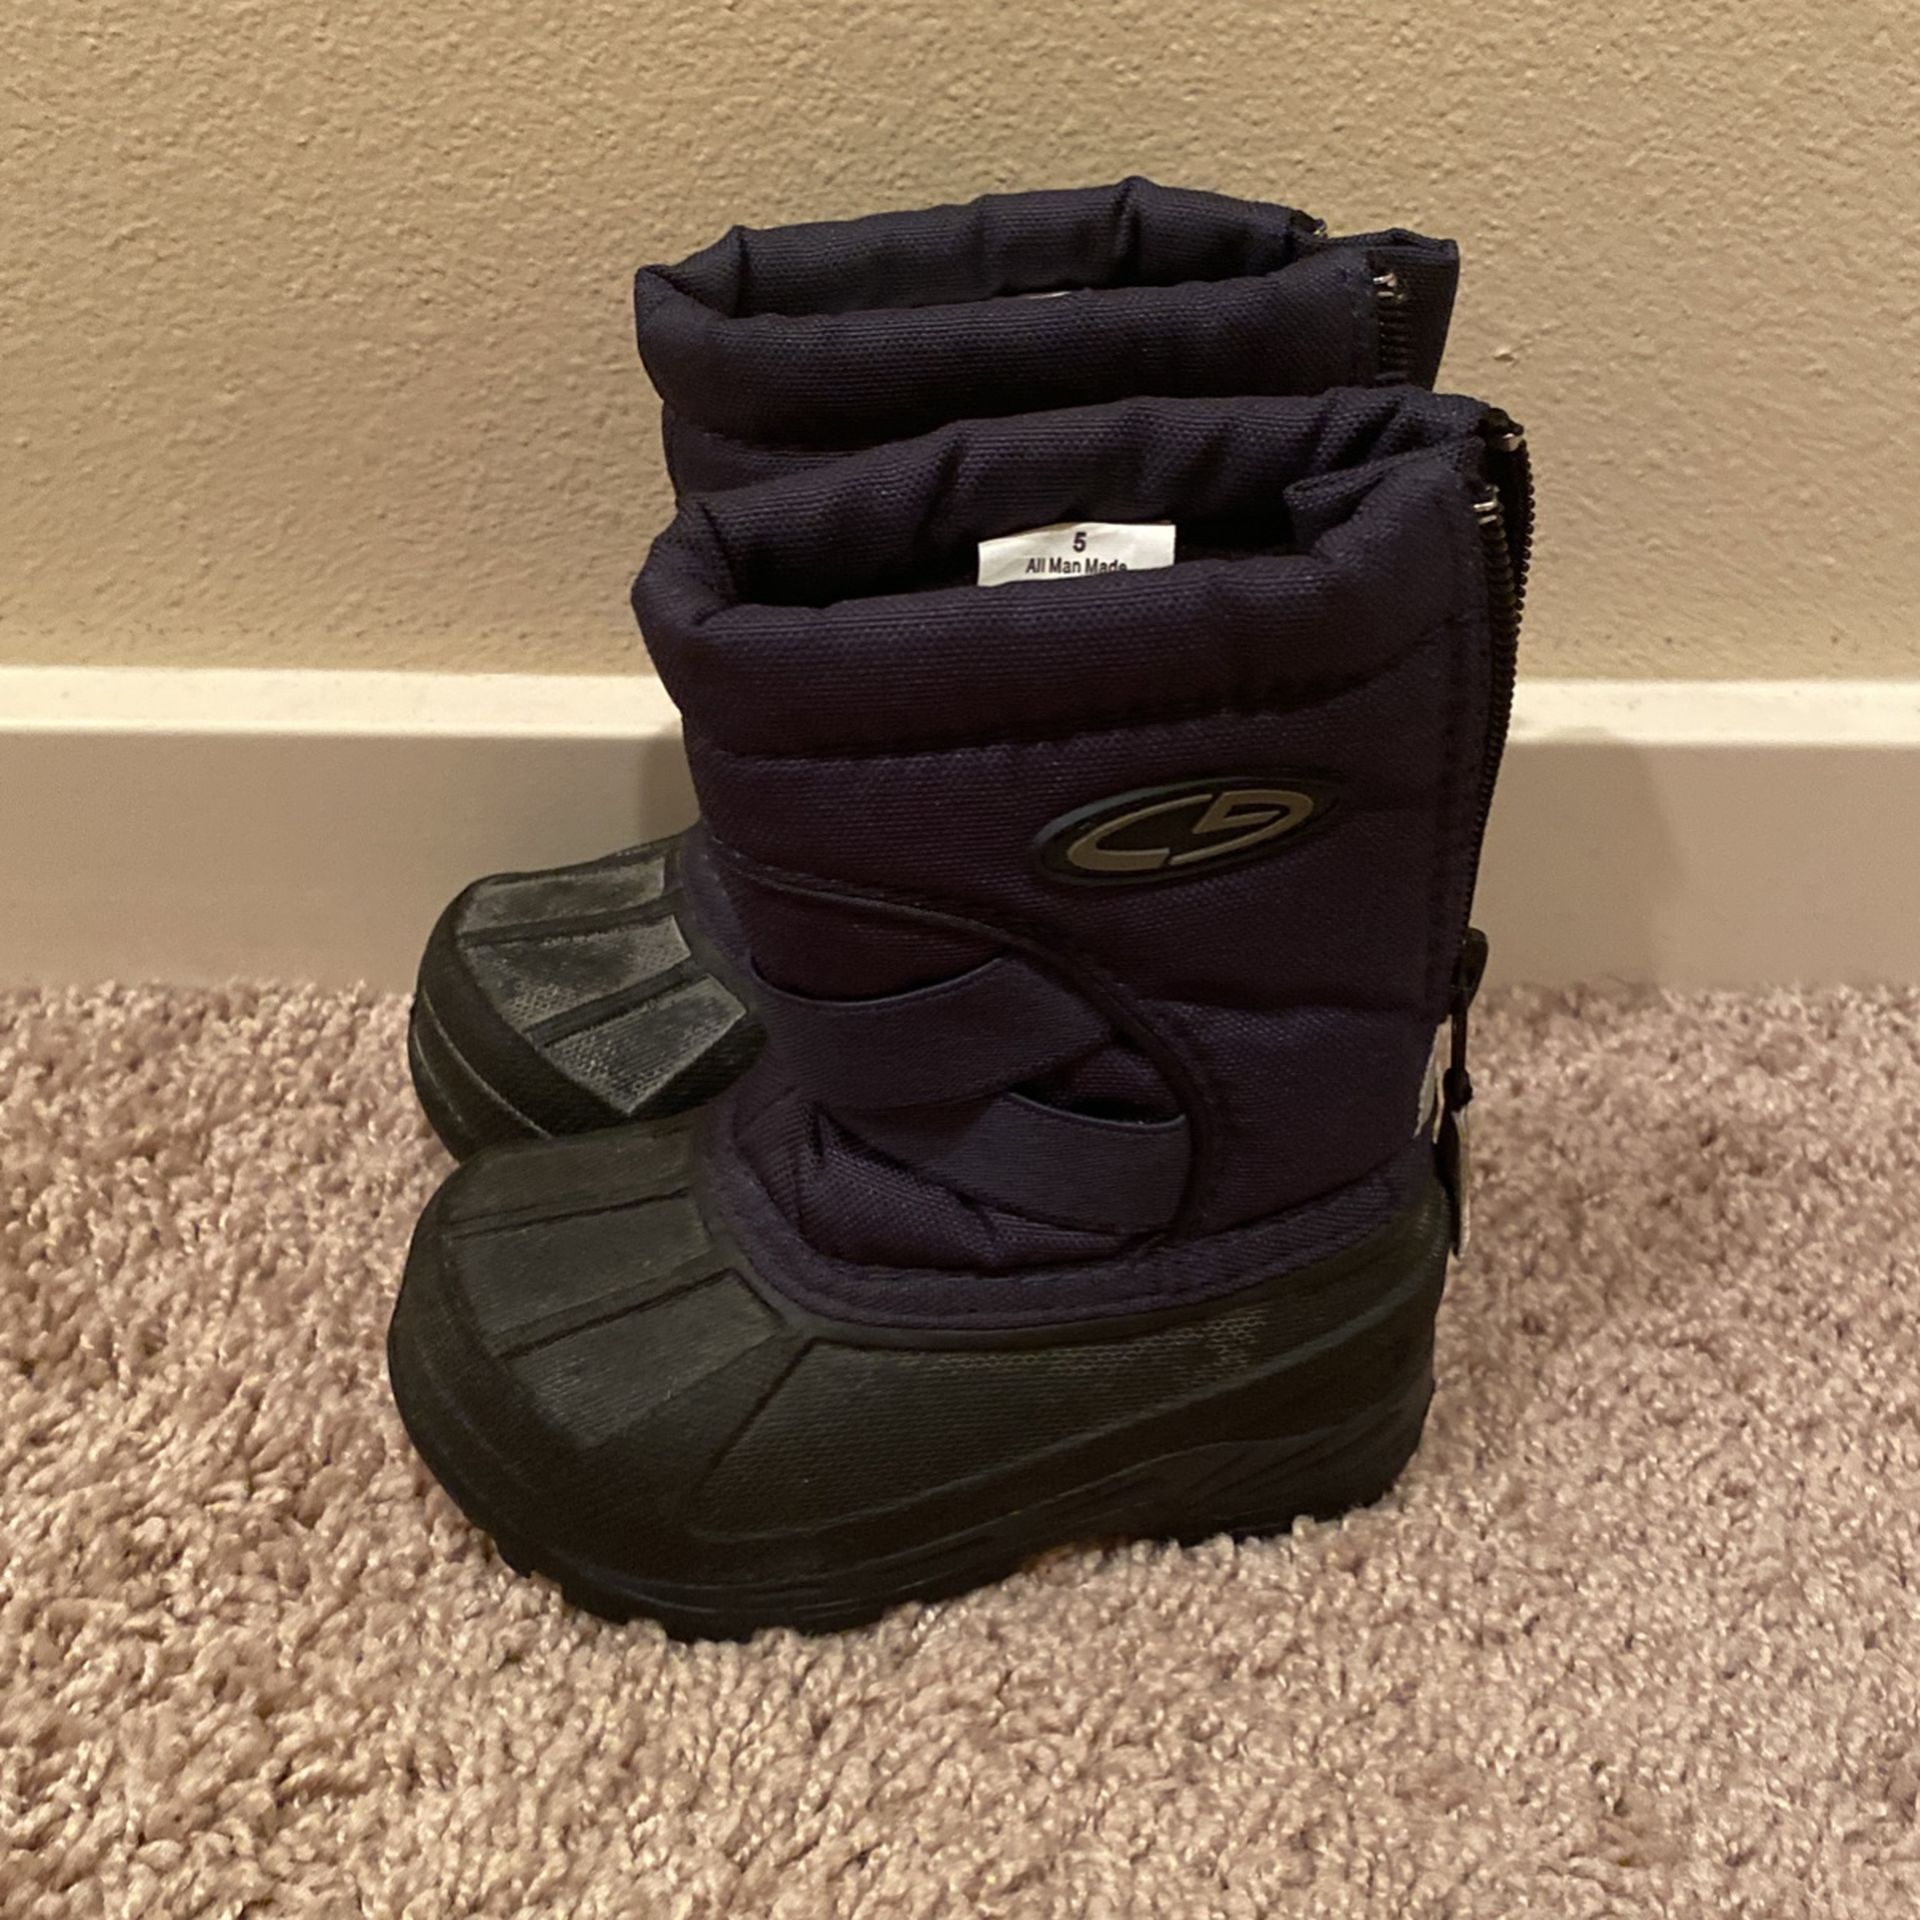 Toddler Snow Boots - Size 5 - $10